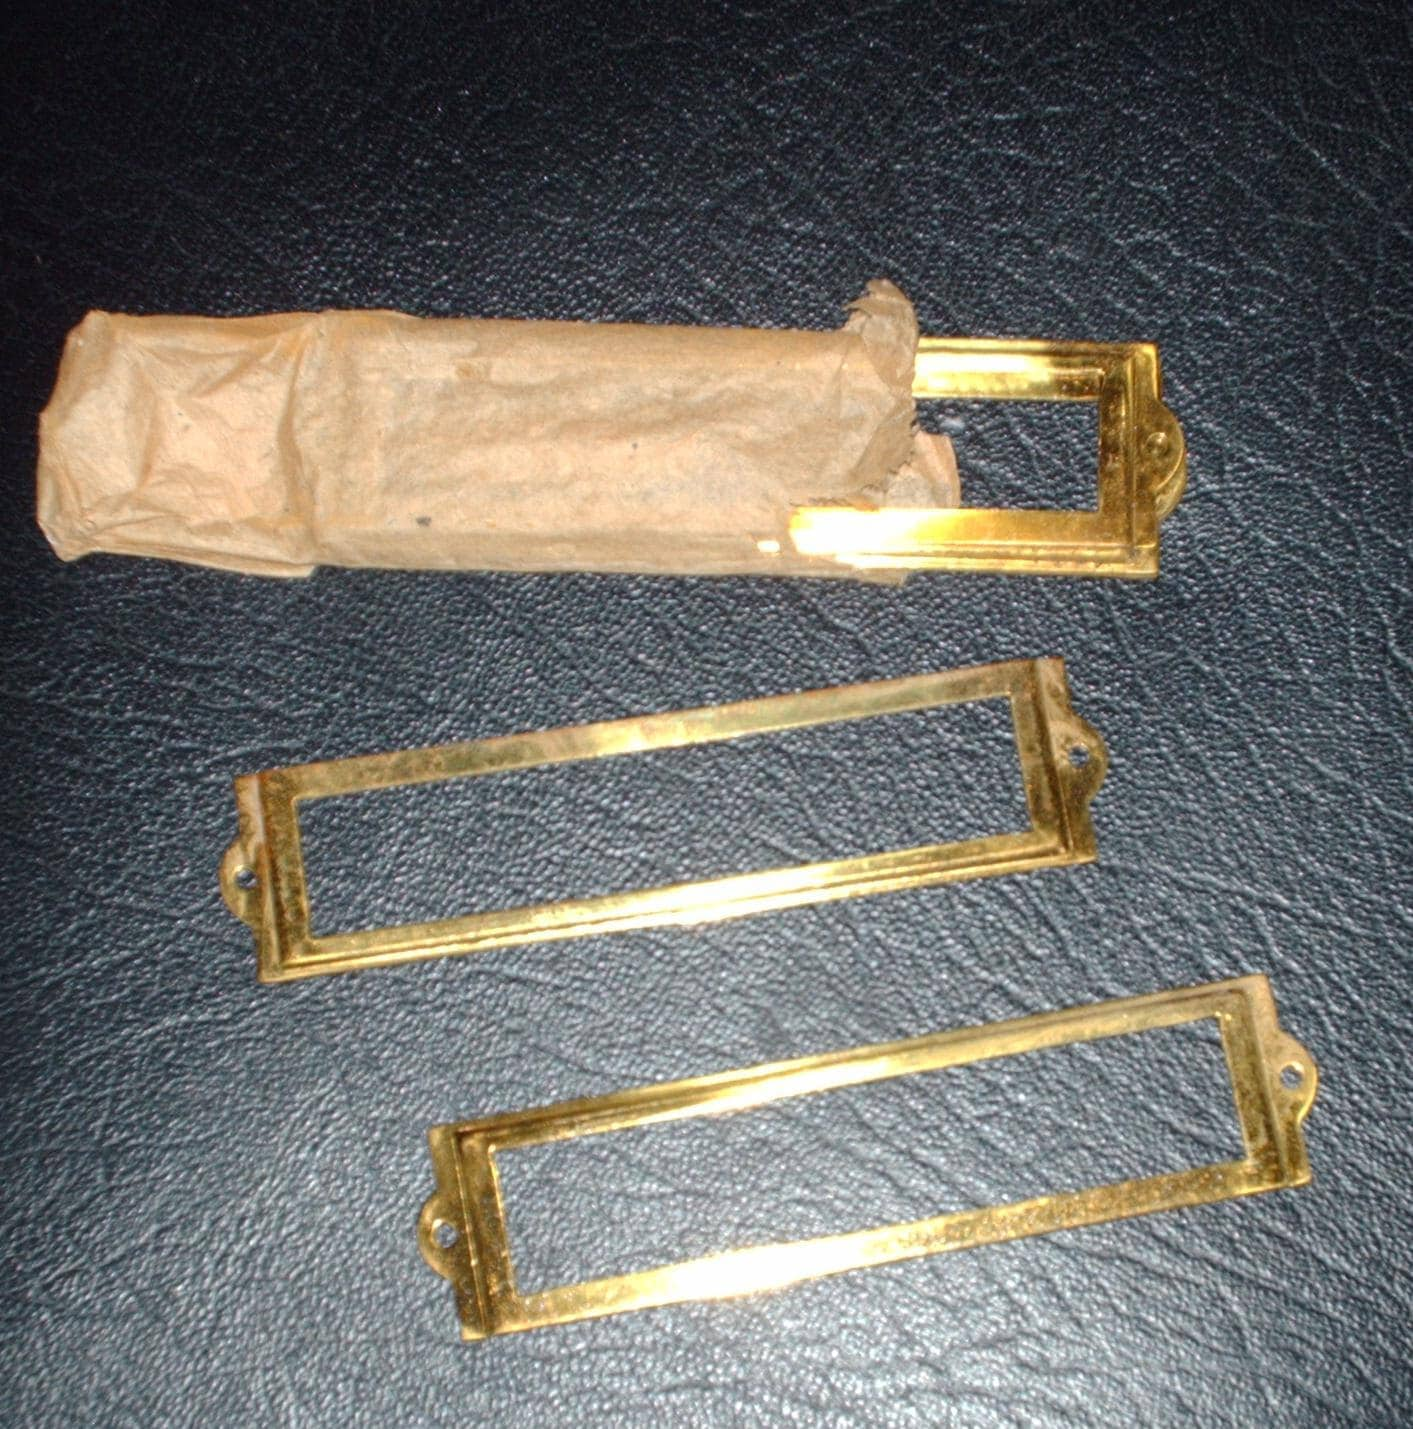 Brass Name Plate Holders - brass name plates